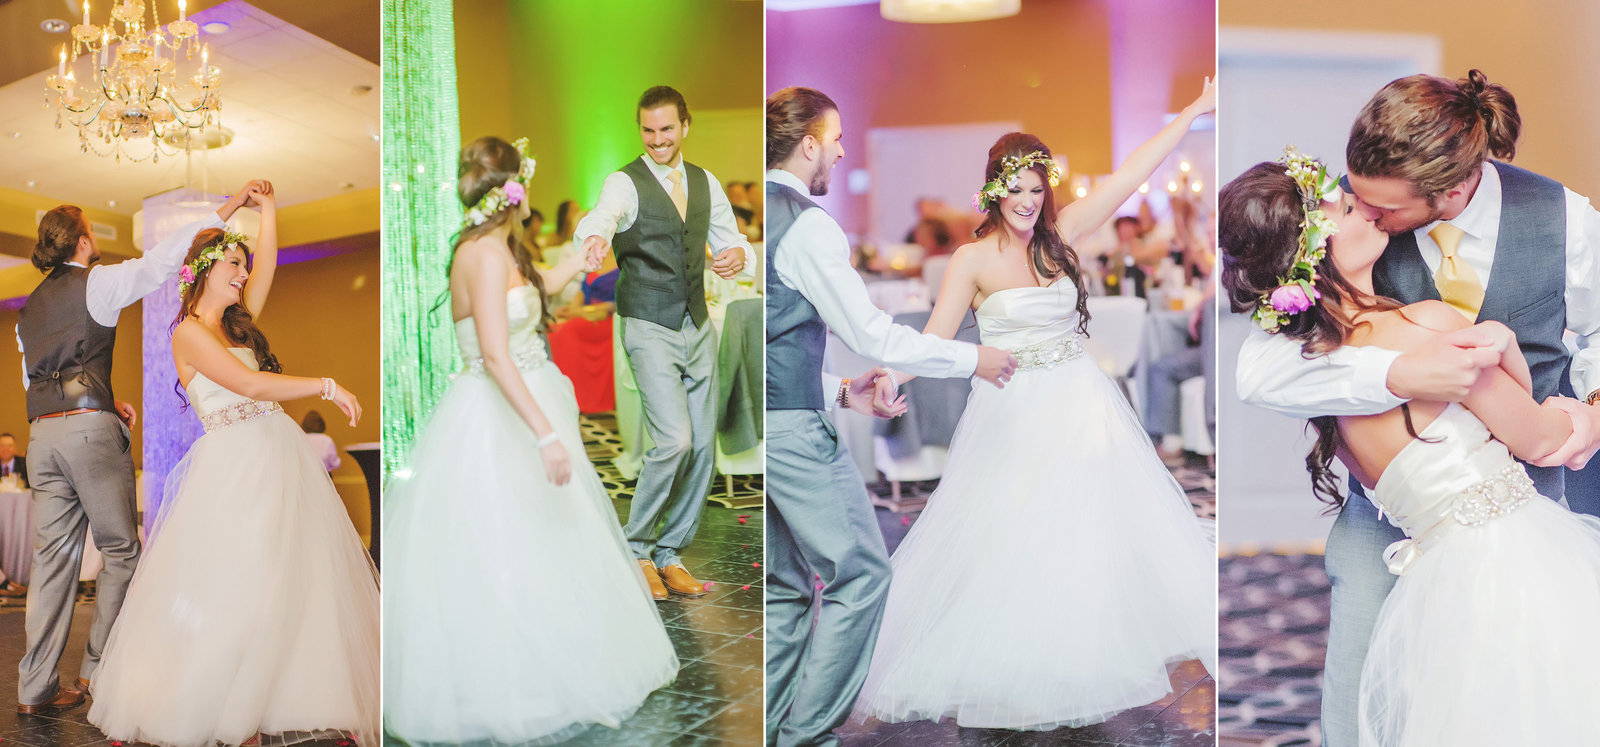 Illinois_wedding_photographer_047